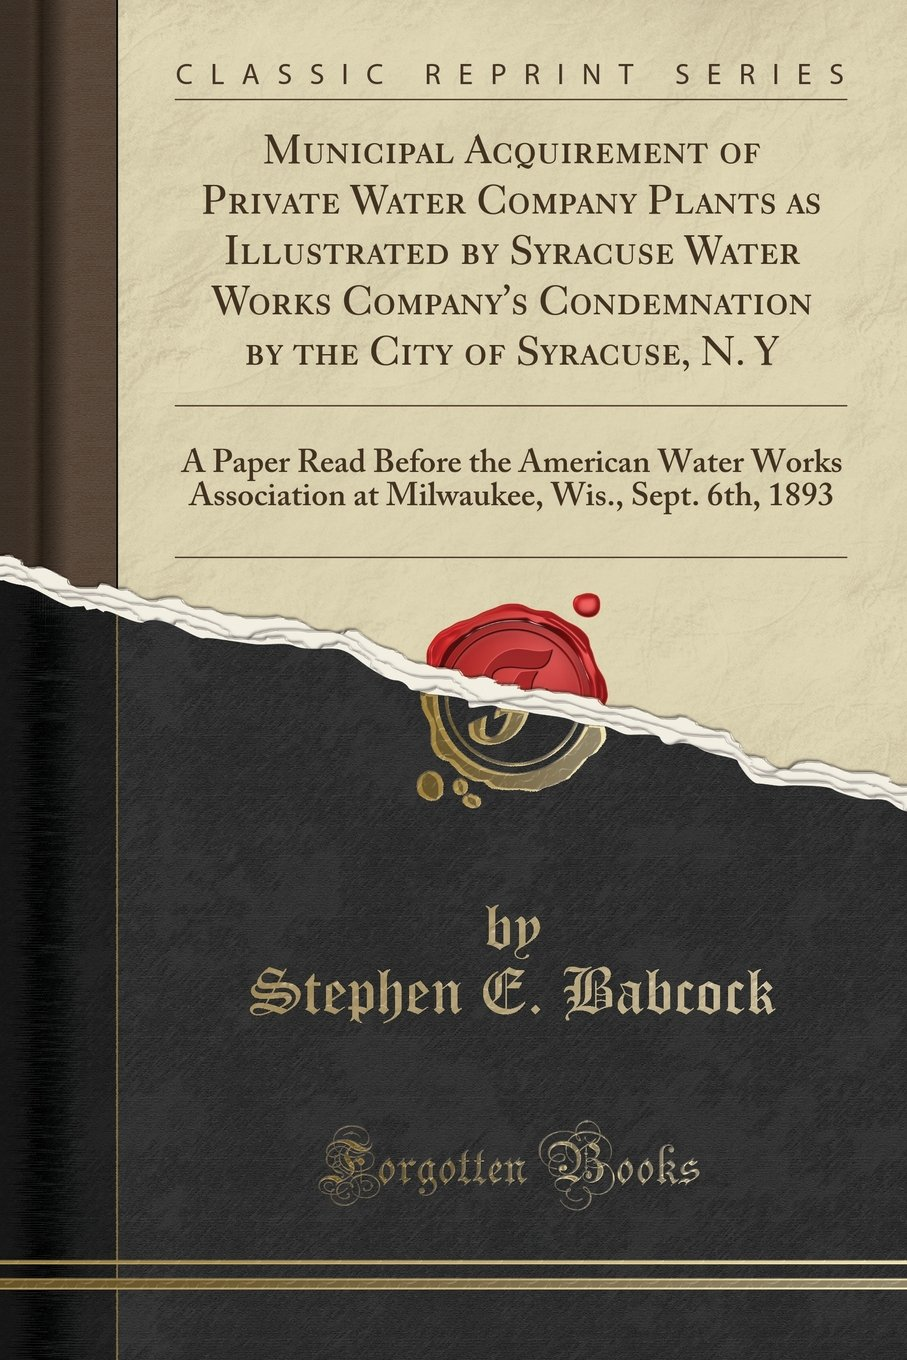 Download Municipal Acquirement of Private Water Company Plants as Illustrated by Syracuse Water Works Company's Condemnation by the City of Syracuse, N. Y: A ... at Milwaukee, Wis., Sept. 6th, 1893 PDF